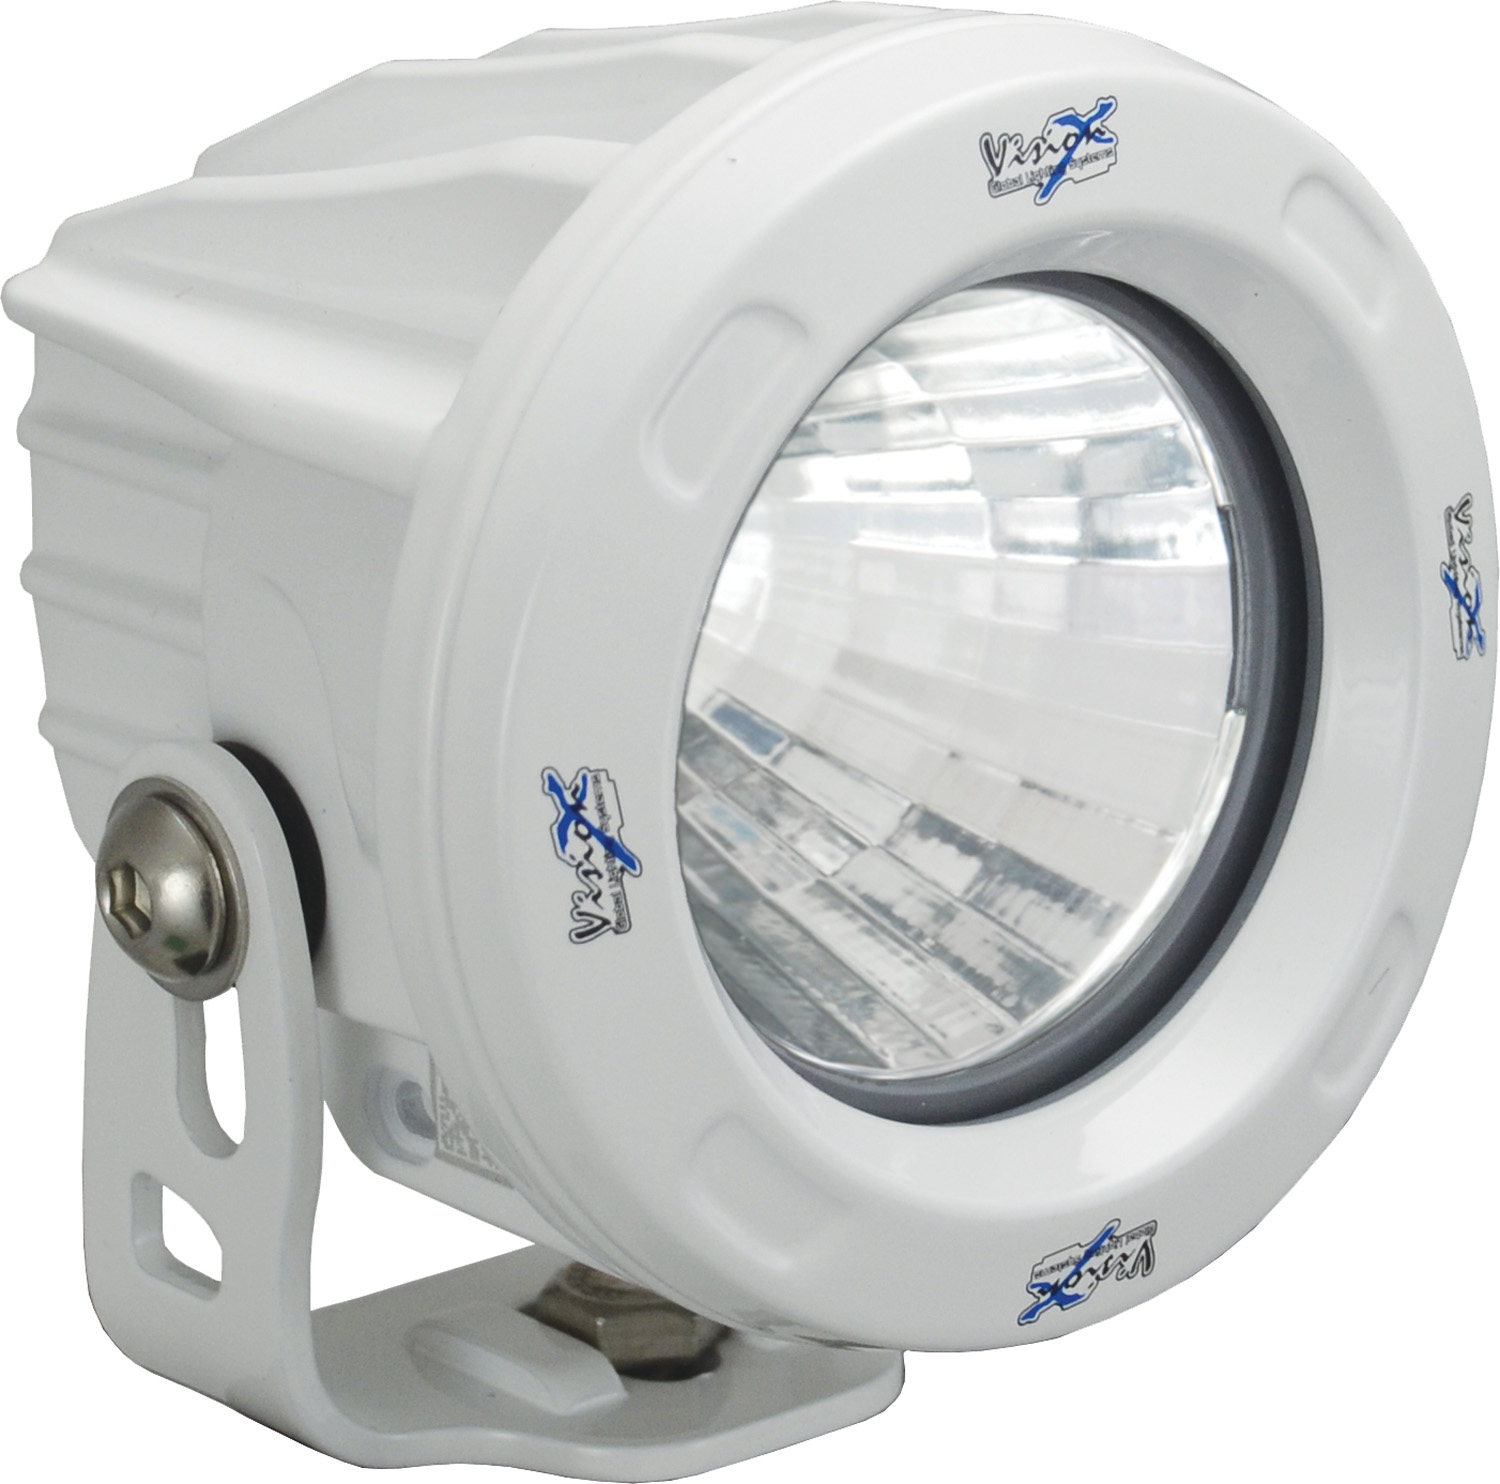 OPTIMUS ROUND WHITE 1 10W LED 60ç FLOOD